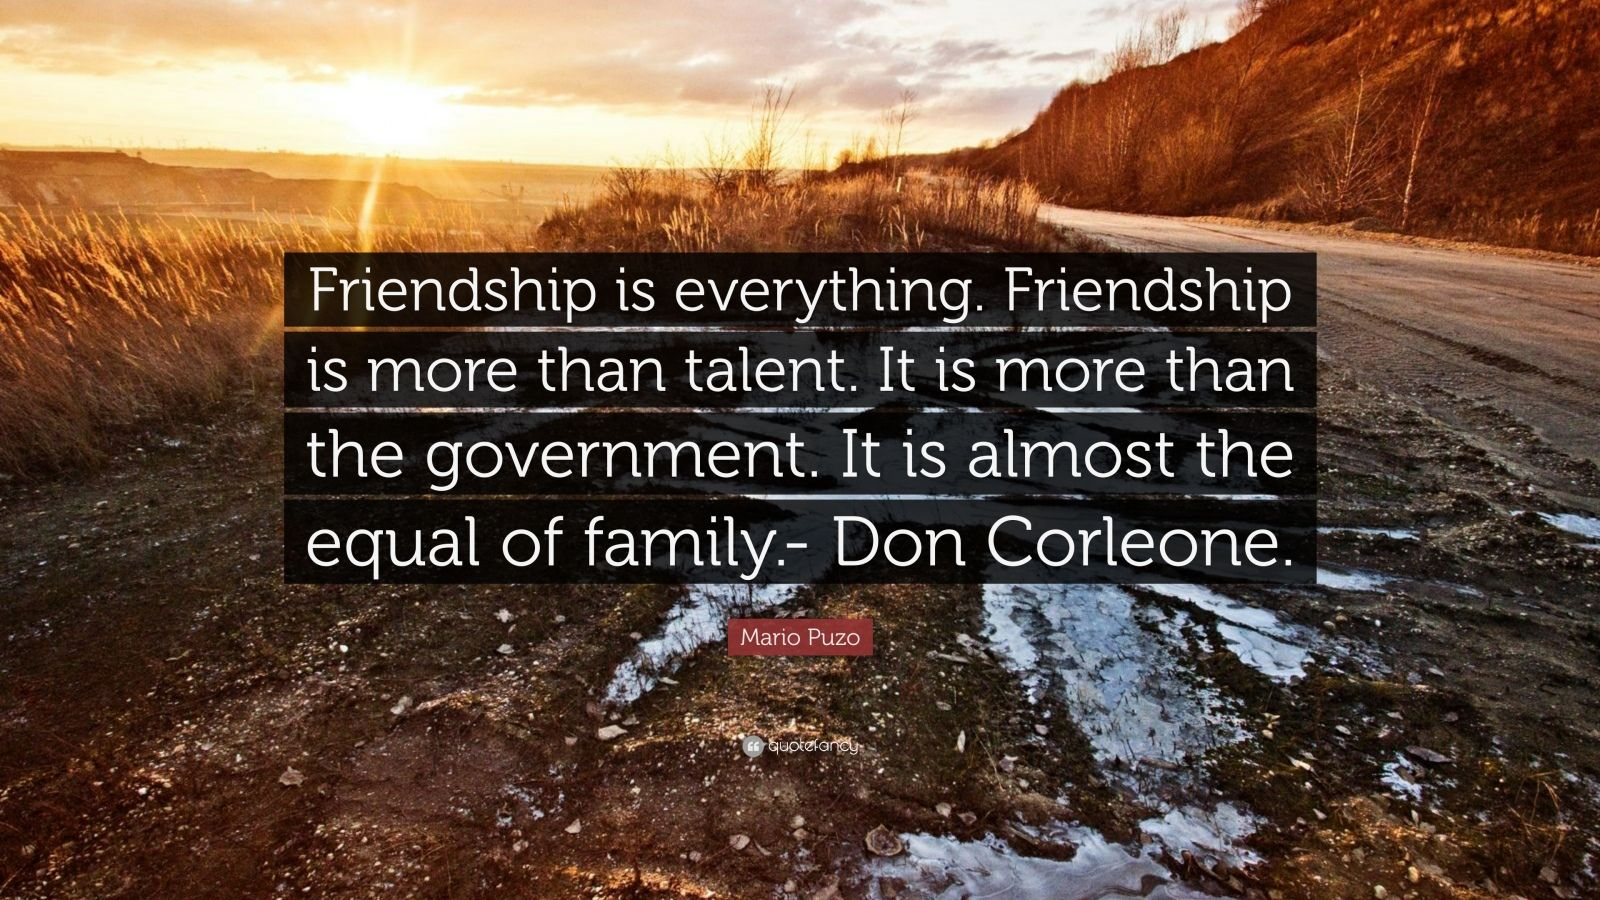 "Mario Puzo Quote: ""Friendship is everything. Friendship is more than talent. It is more than the government. It is almost the equal of family.- Don Corleone."""